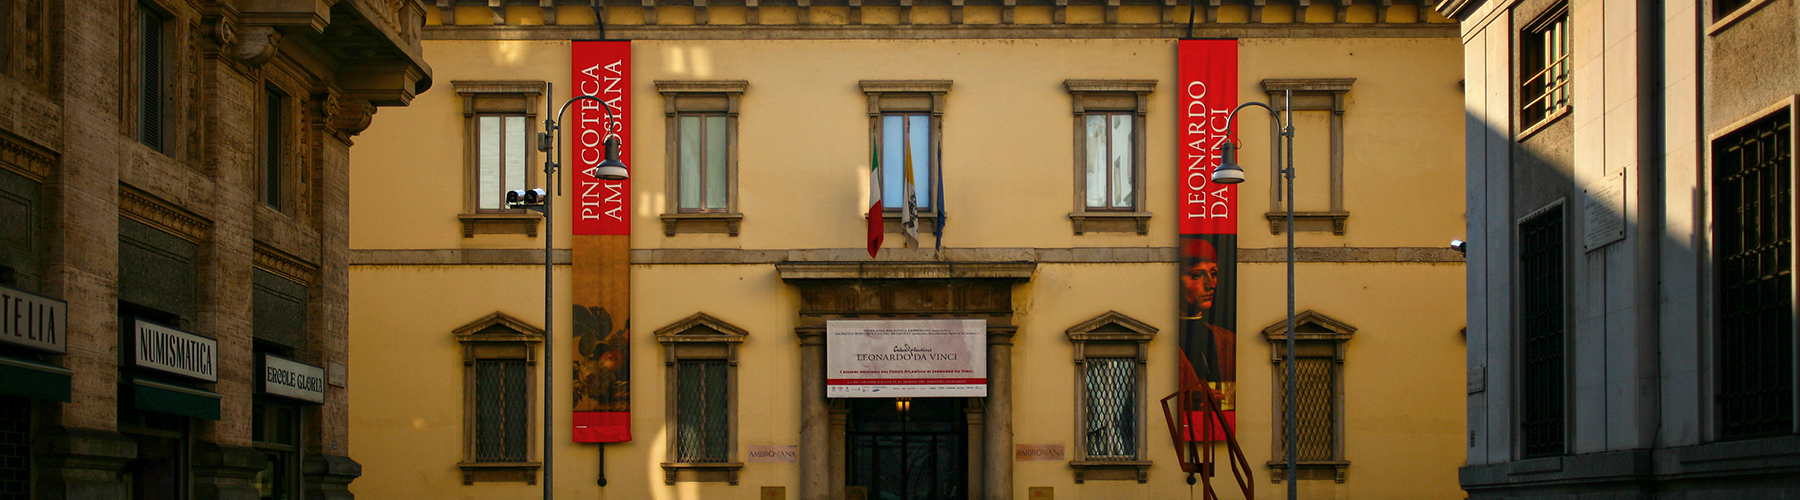 Milan – Hostels close to Pinacoteca Ambrosiana. Maps for Milan, Photos and Reviews for each hostel in Milan.